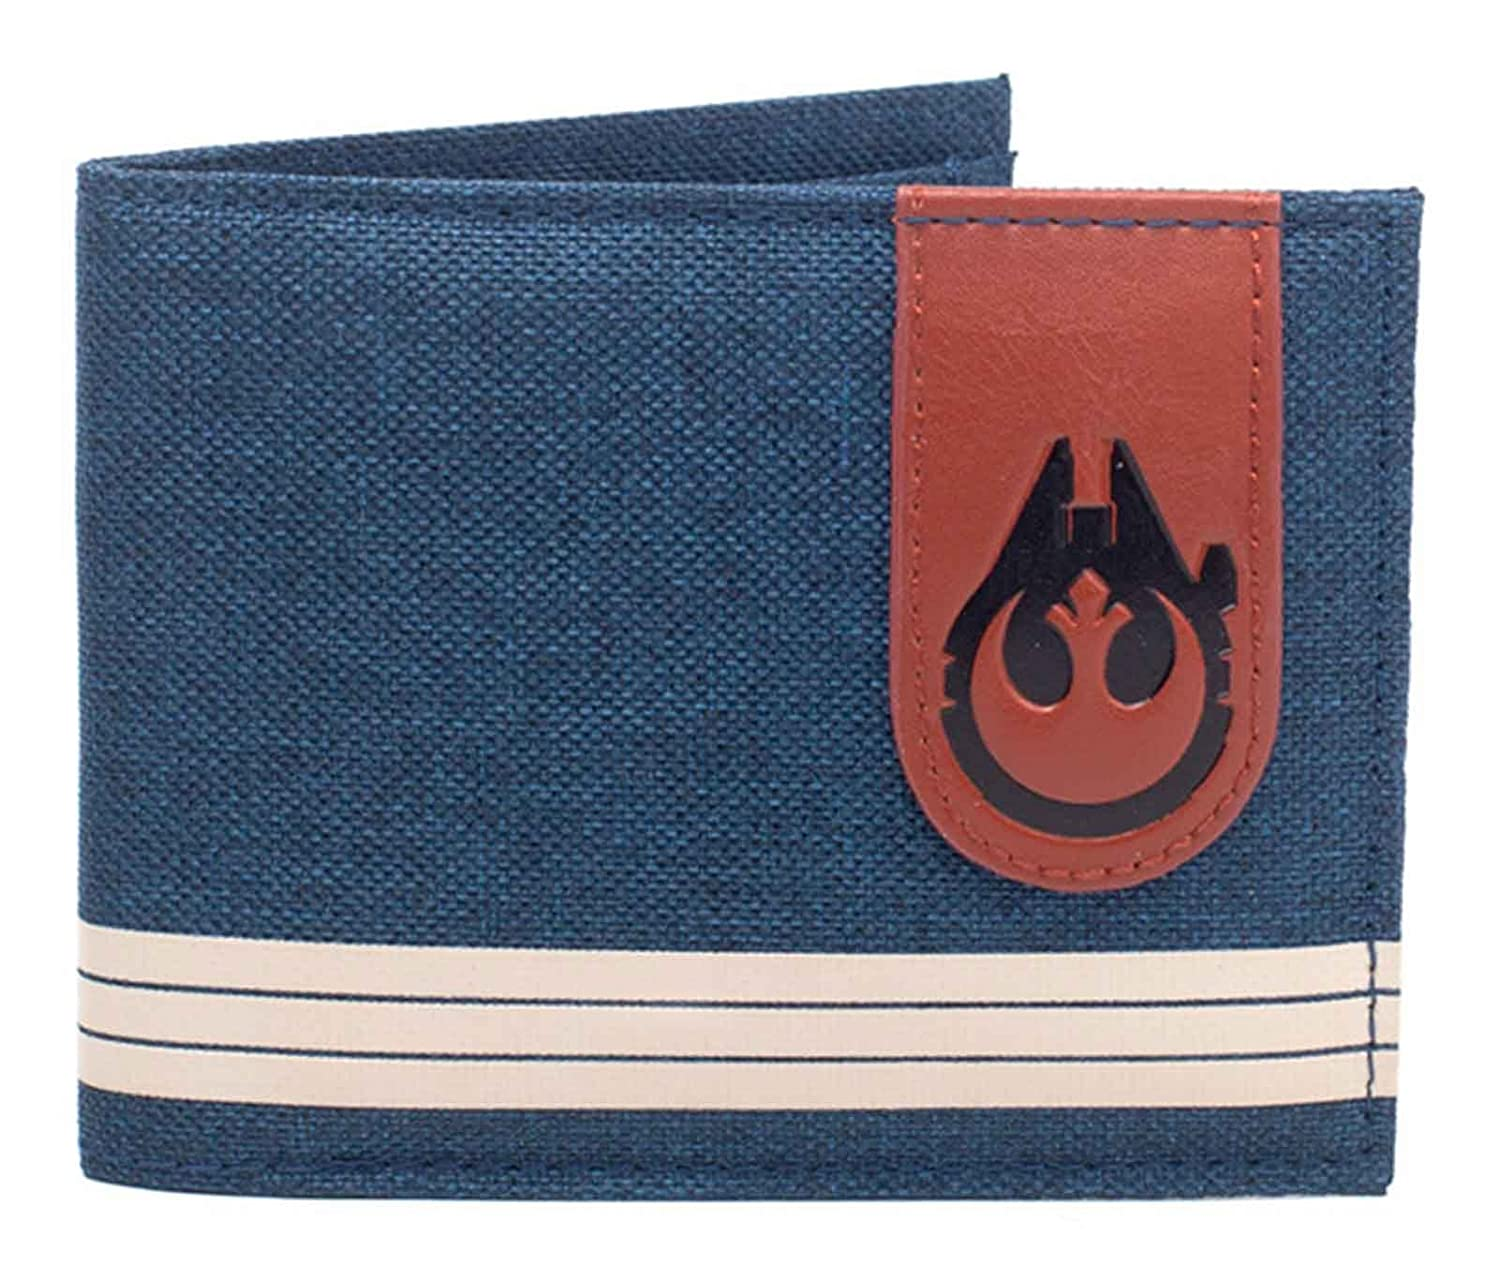 Star Wars Cartera Logotipo de Falcon (Talla única), Color Azul: Amazon.es: Electrónica